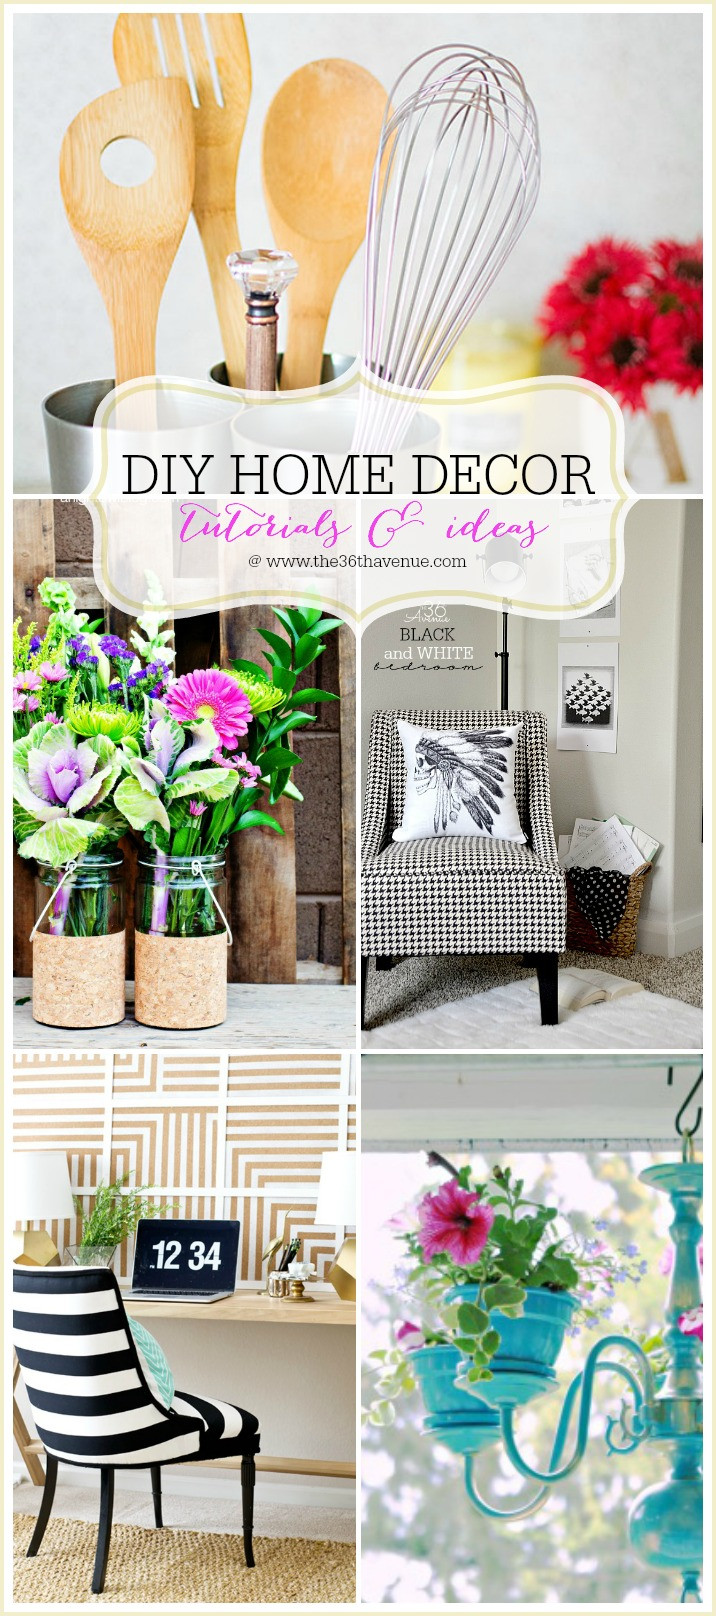 Diy Home Ideas  The 36th AVENUE Home Decor DIY Projects